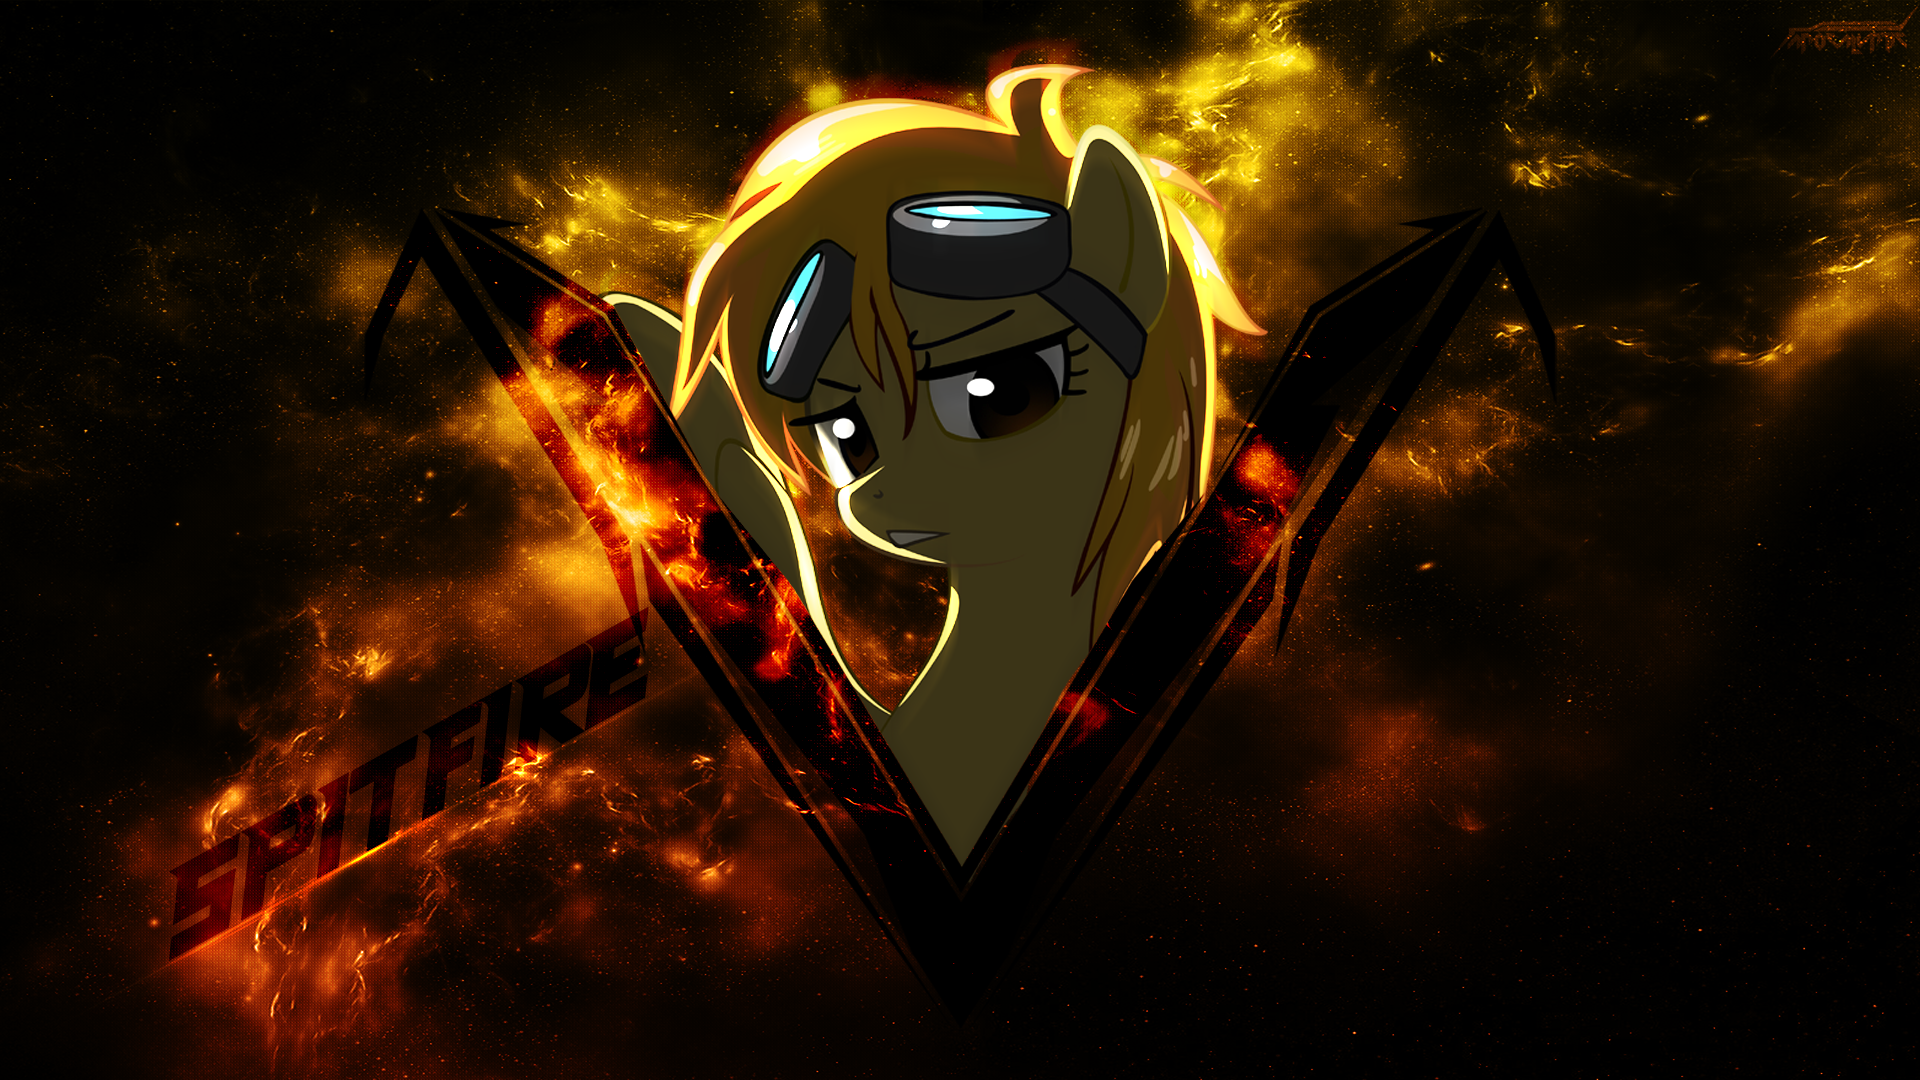 Spitfire wallpaper by officialapocalyptic on deviantart spitfire wallpaper by officialapocalyptic spitfire wallpaper by officialapocalyptic voltagebd Choice Image